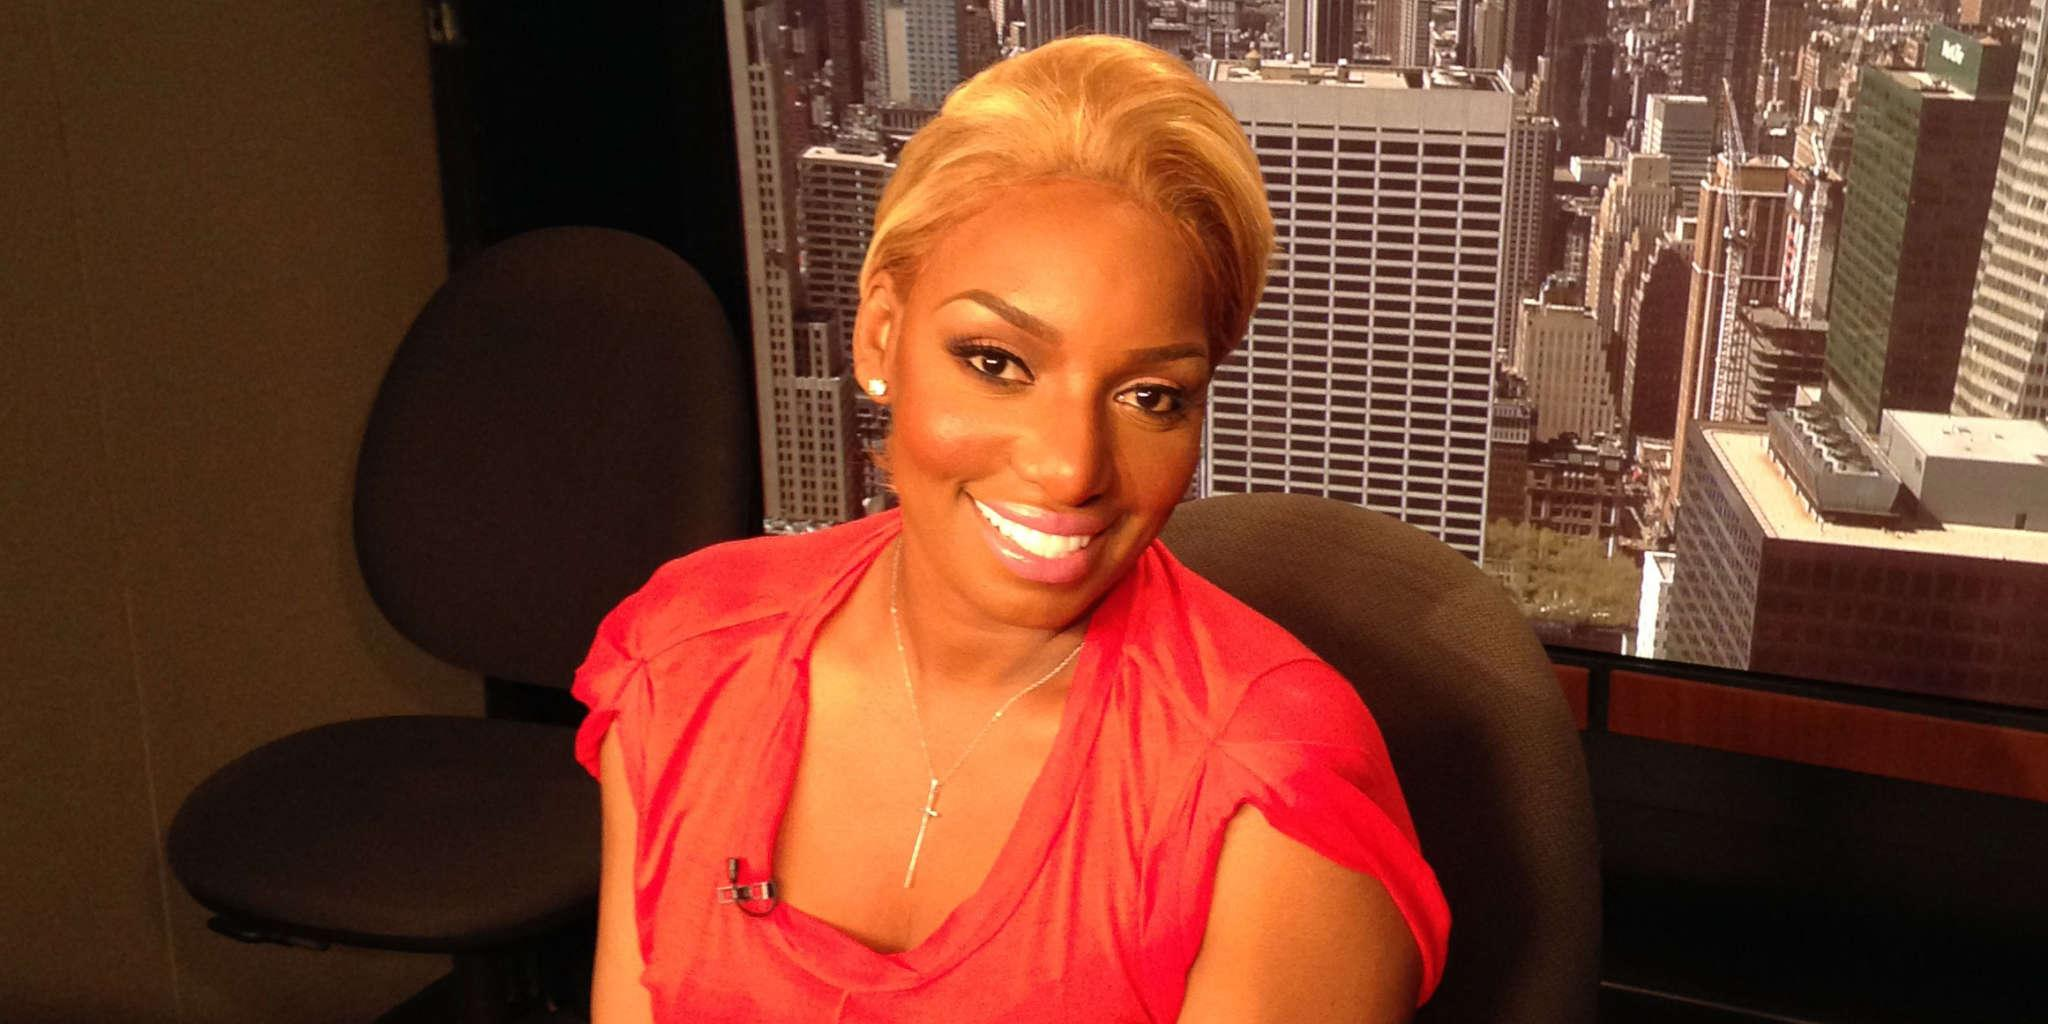 NeNe Leakes Breaks The Internet With The Latest Photos In Which She Shows Off Her Beach Body - People Accuse Her Of Editing The Pics